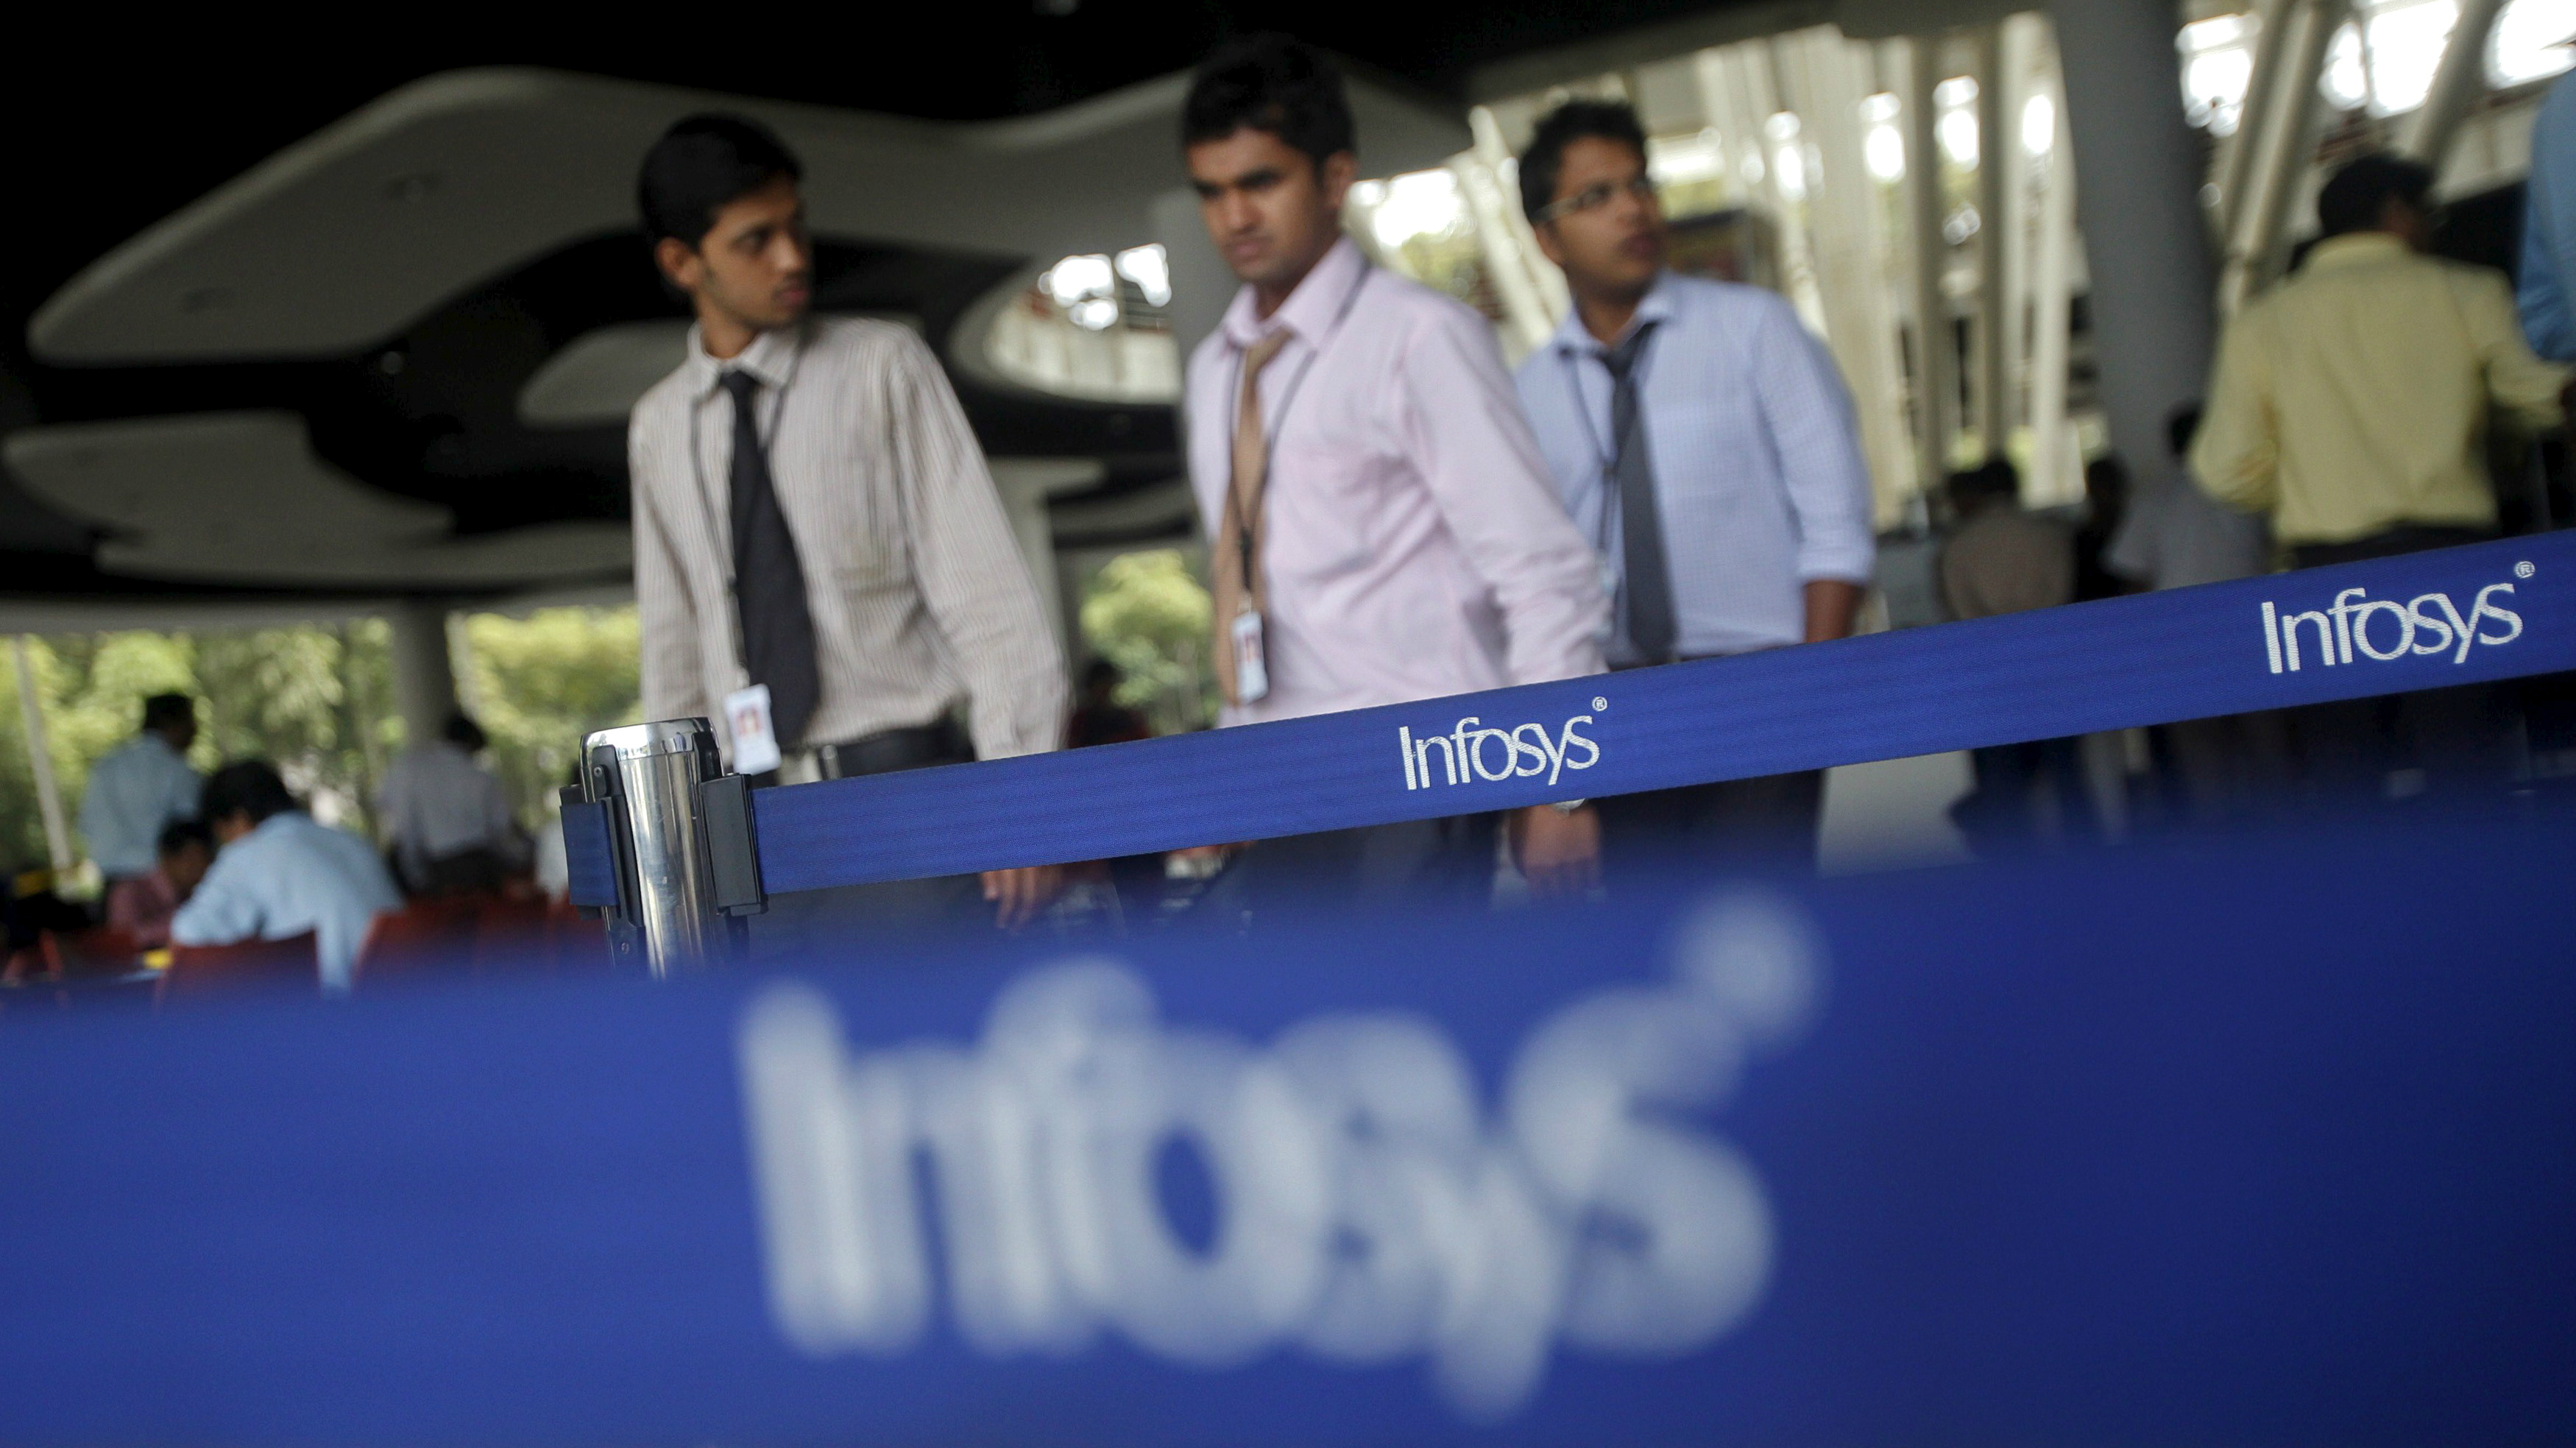 Employees of Indian software company Infosys walk past Infosys logos at their campus in the Electronic City area in Bangalore in this September 4, 2012 file photo. REUTERS/Vivek Prakash/File Photo